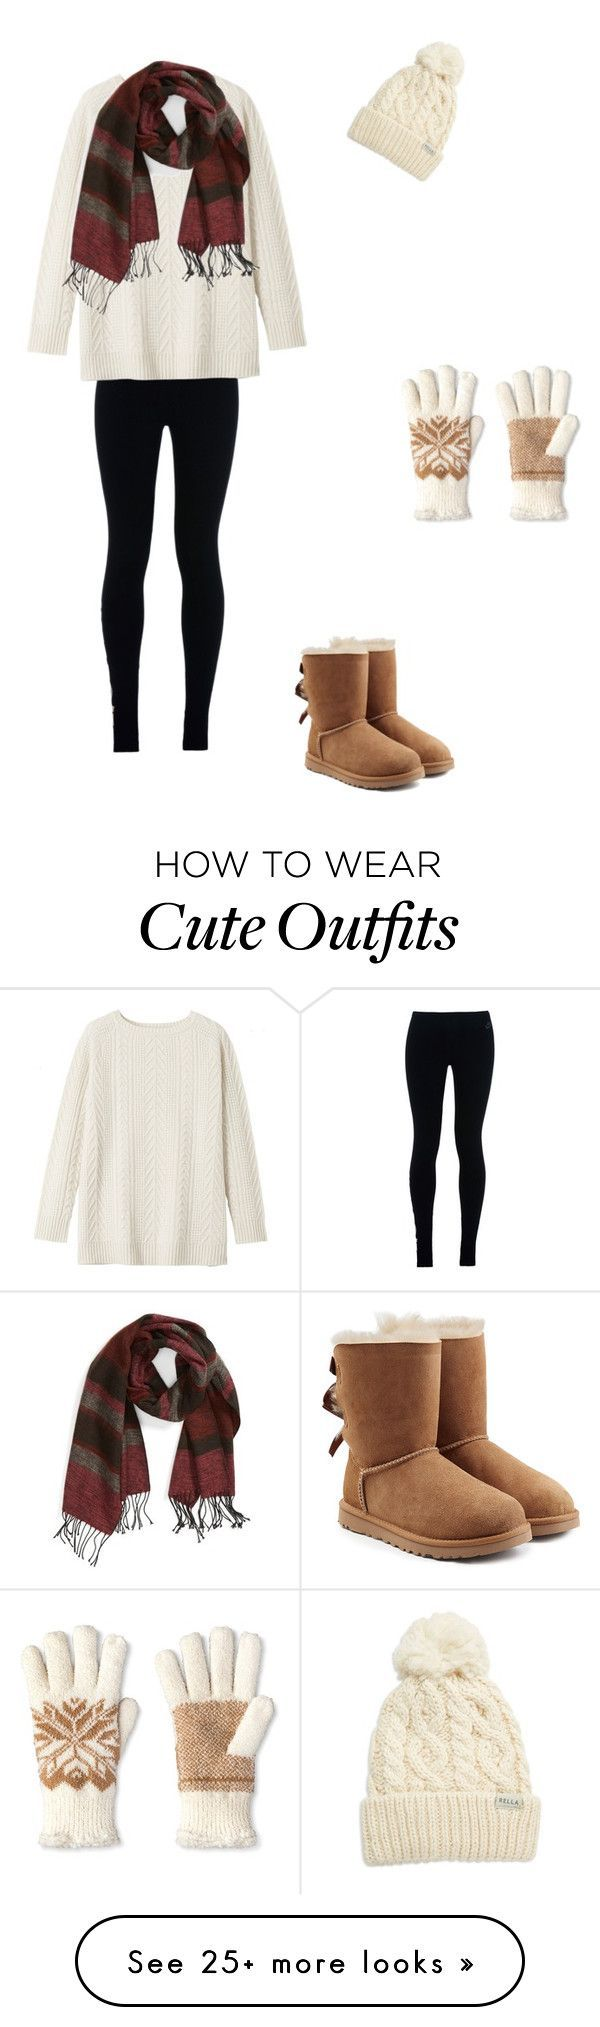 """Cute winter outfit !!"" by annabelledickinson on Polyvore featuring NIKE, Toast, Rella, Isotoner, Echo and UGG Australia"